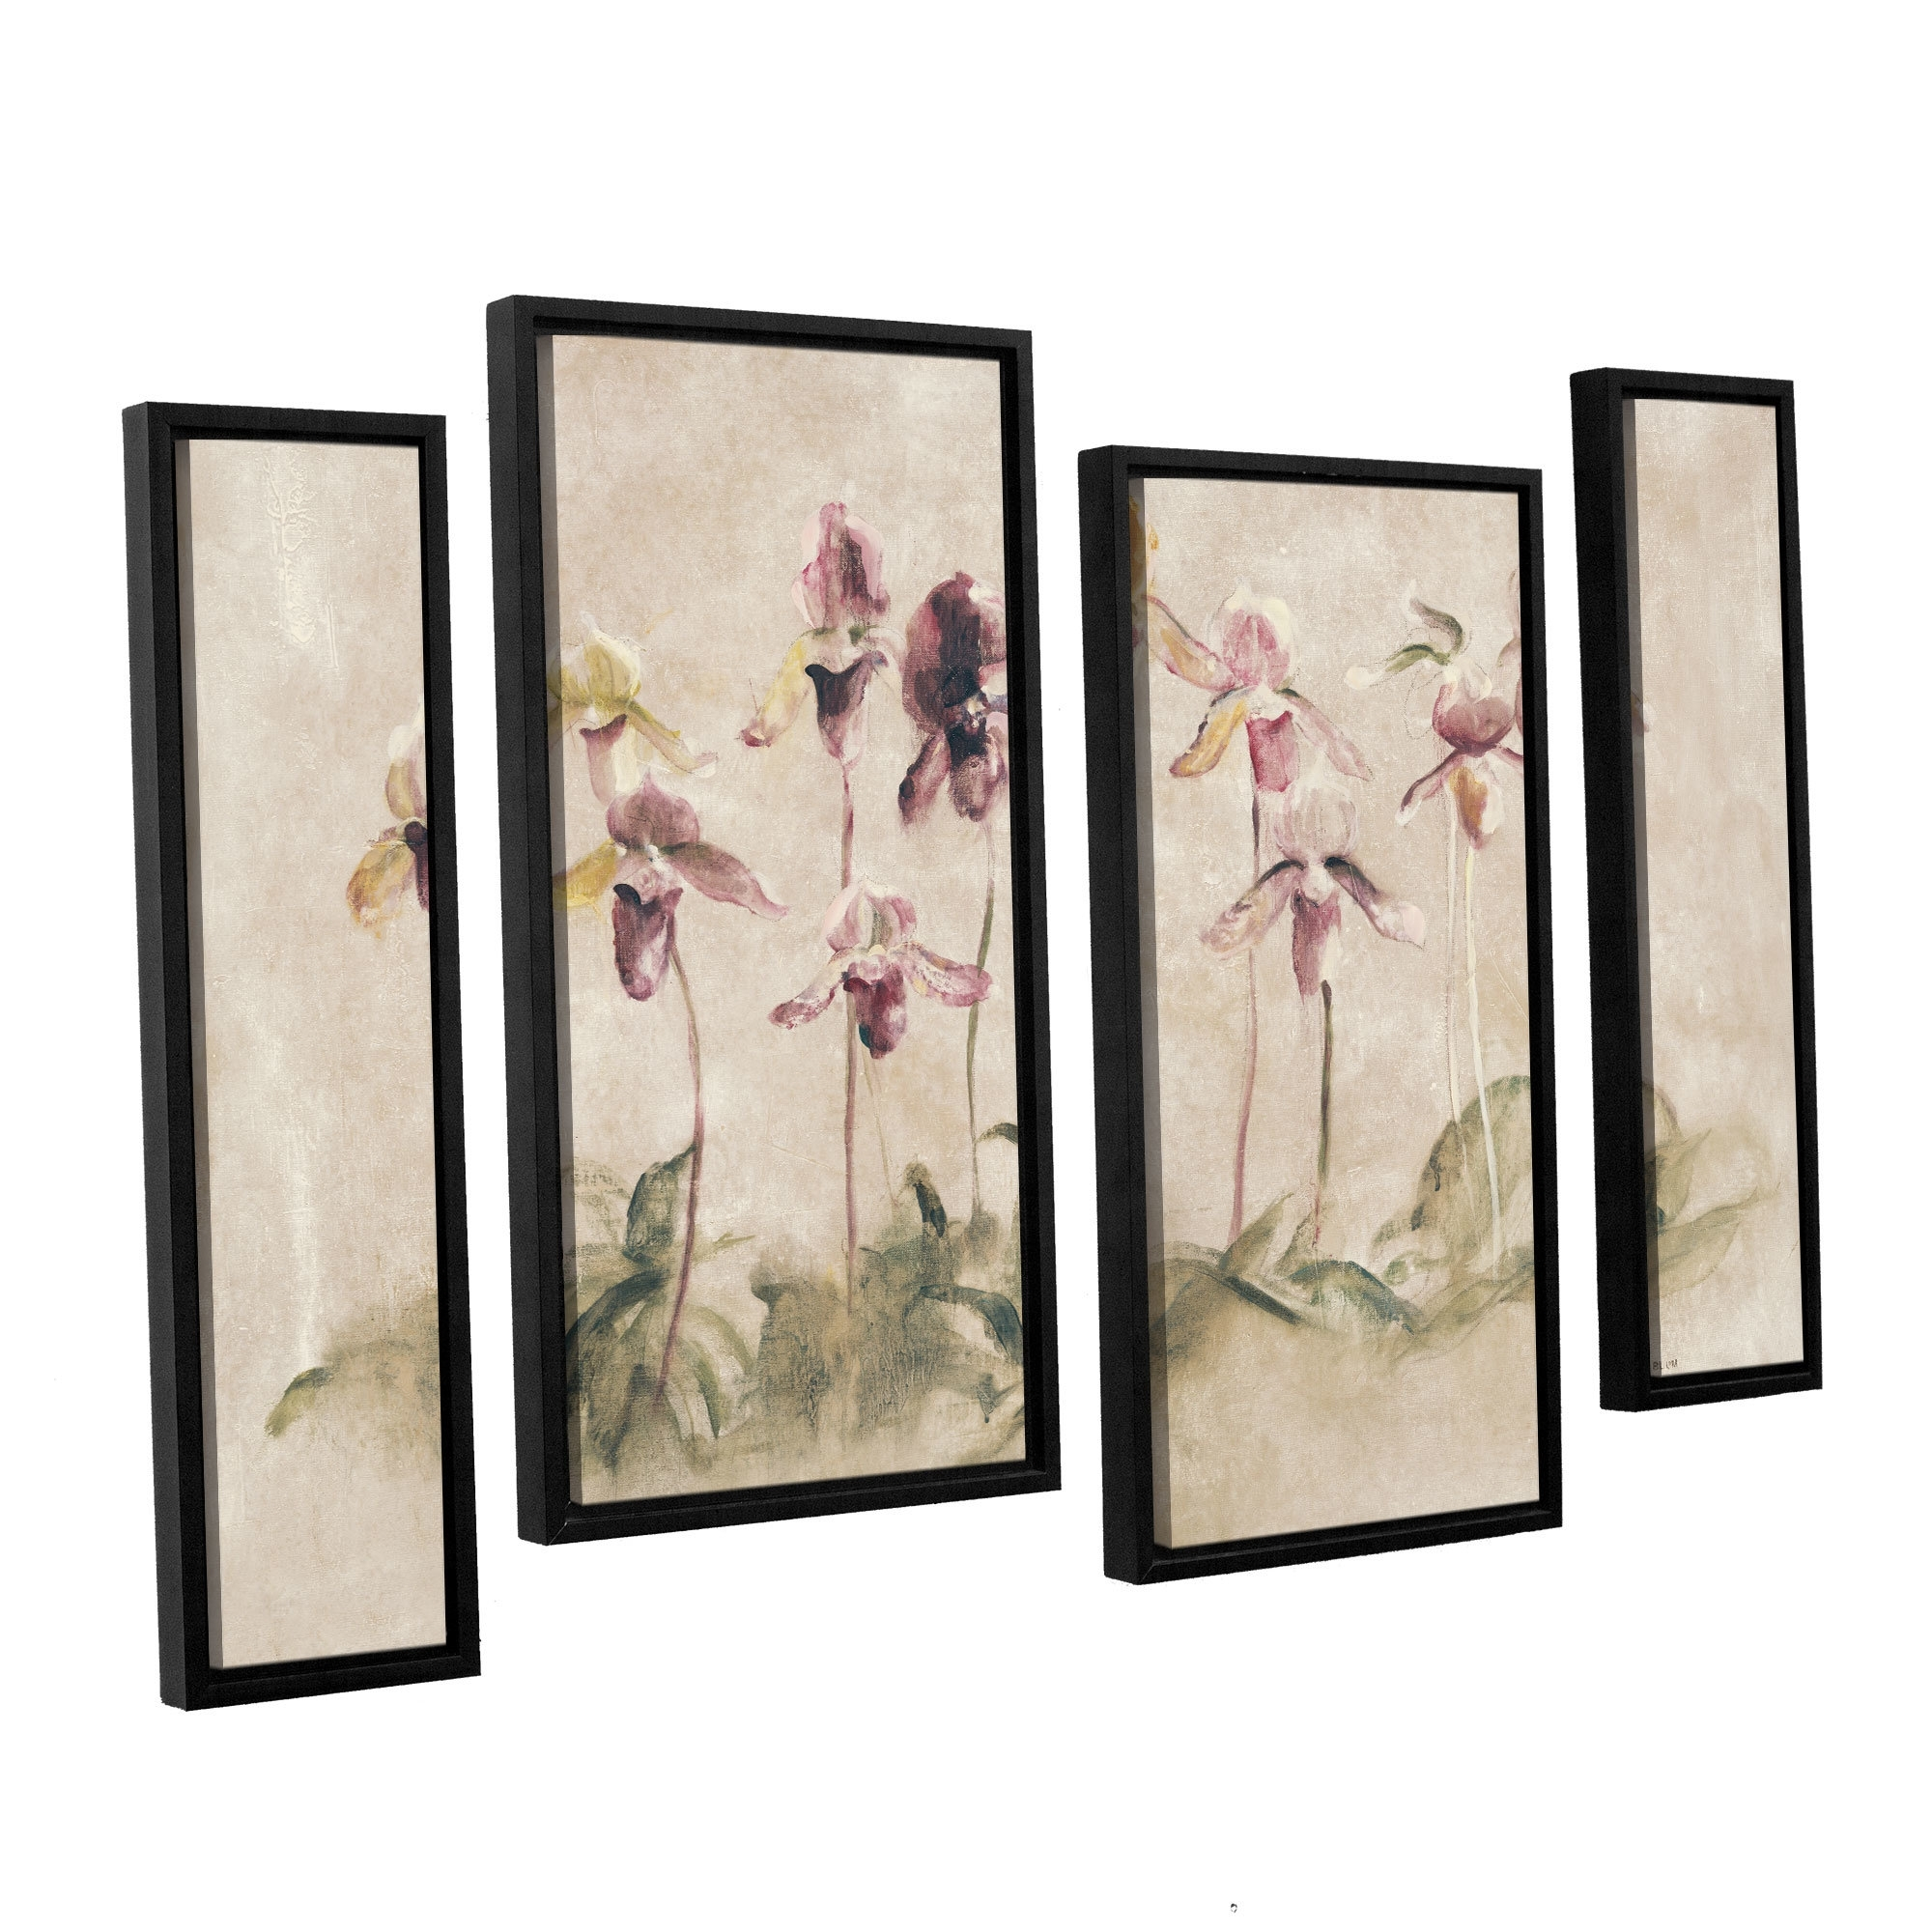 Artwall 'purple Dancing Orchids'cheri Blum 4 Piece Framed With Recent Cheri Blum Framed Art Prints (View 8 of 15)